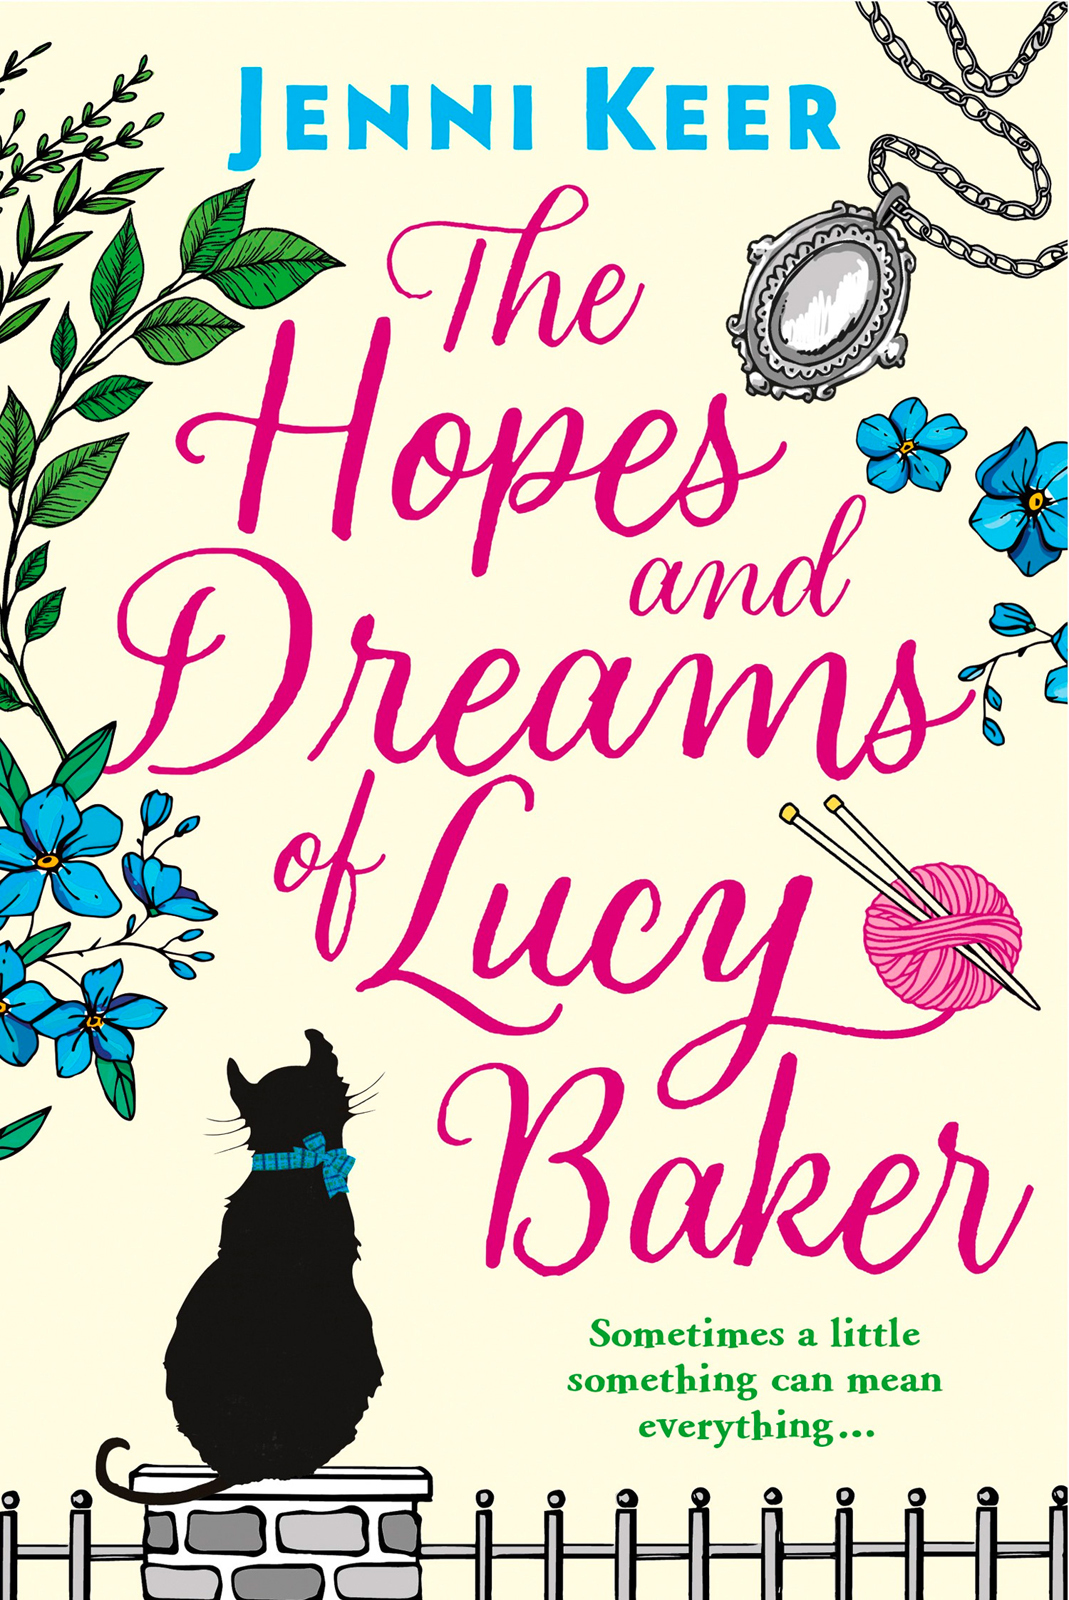 Jenni Keer The Hopes and Dreams of Lucy Baker: The most heart-warming book you'll read this year mink keer 1 42